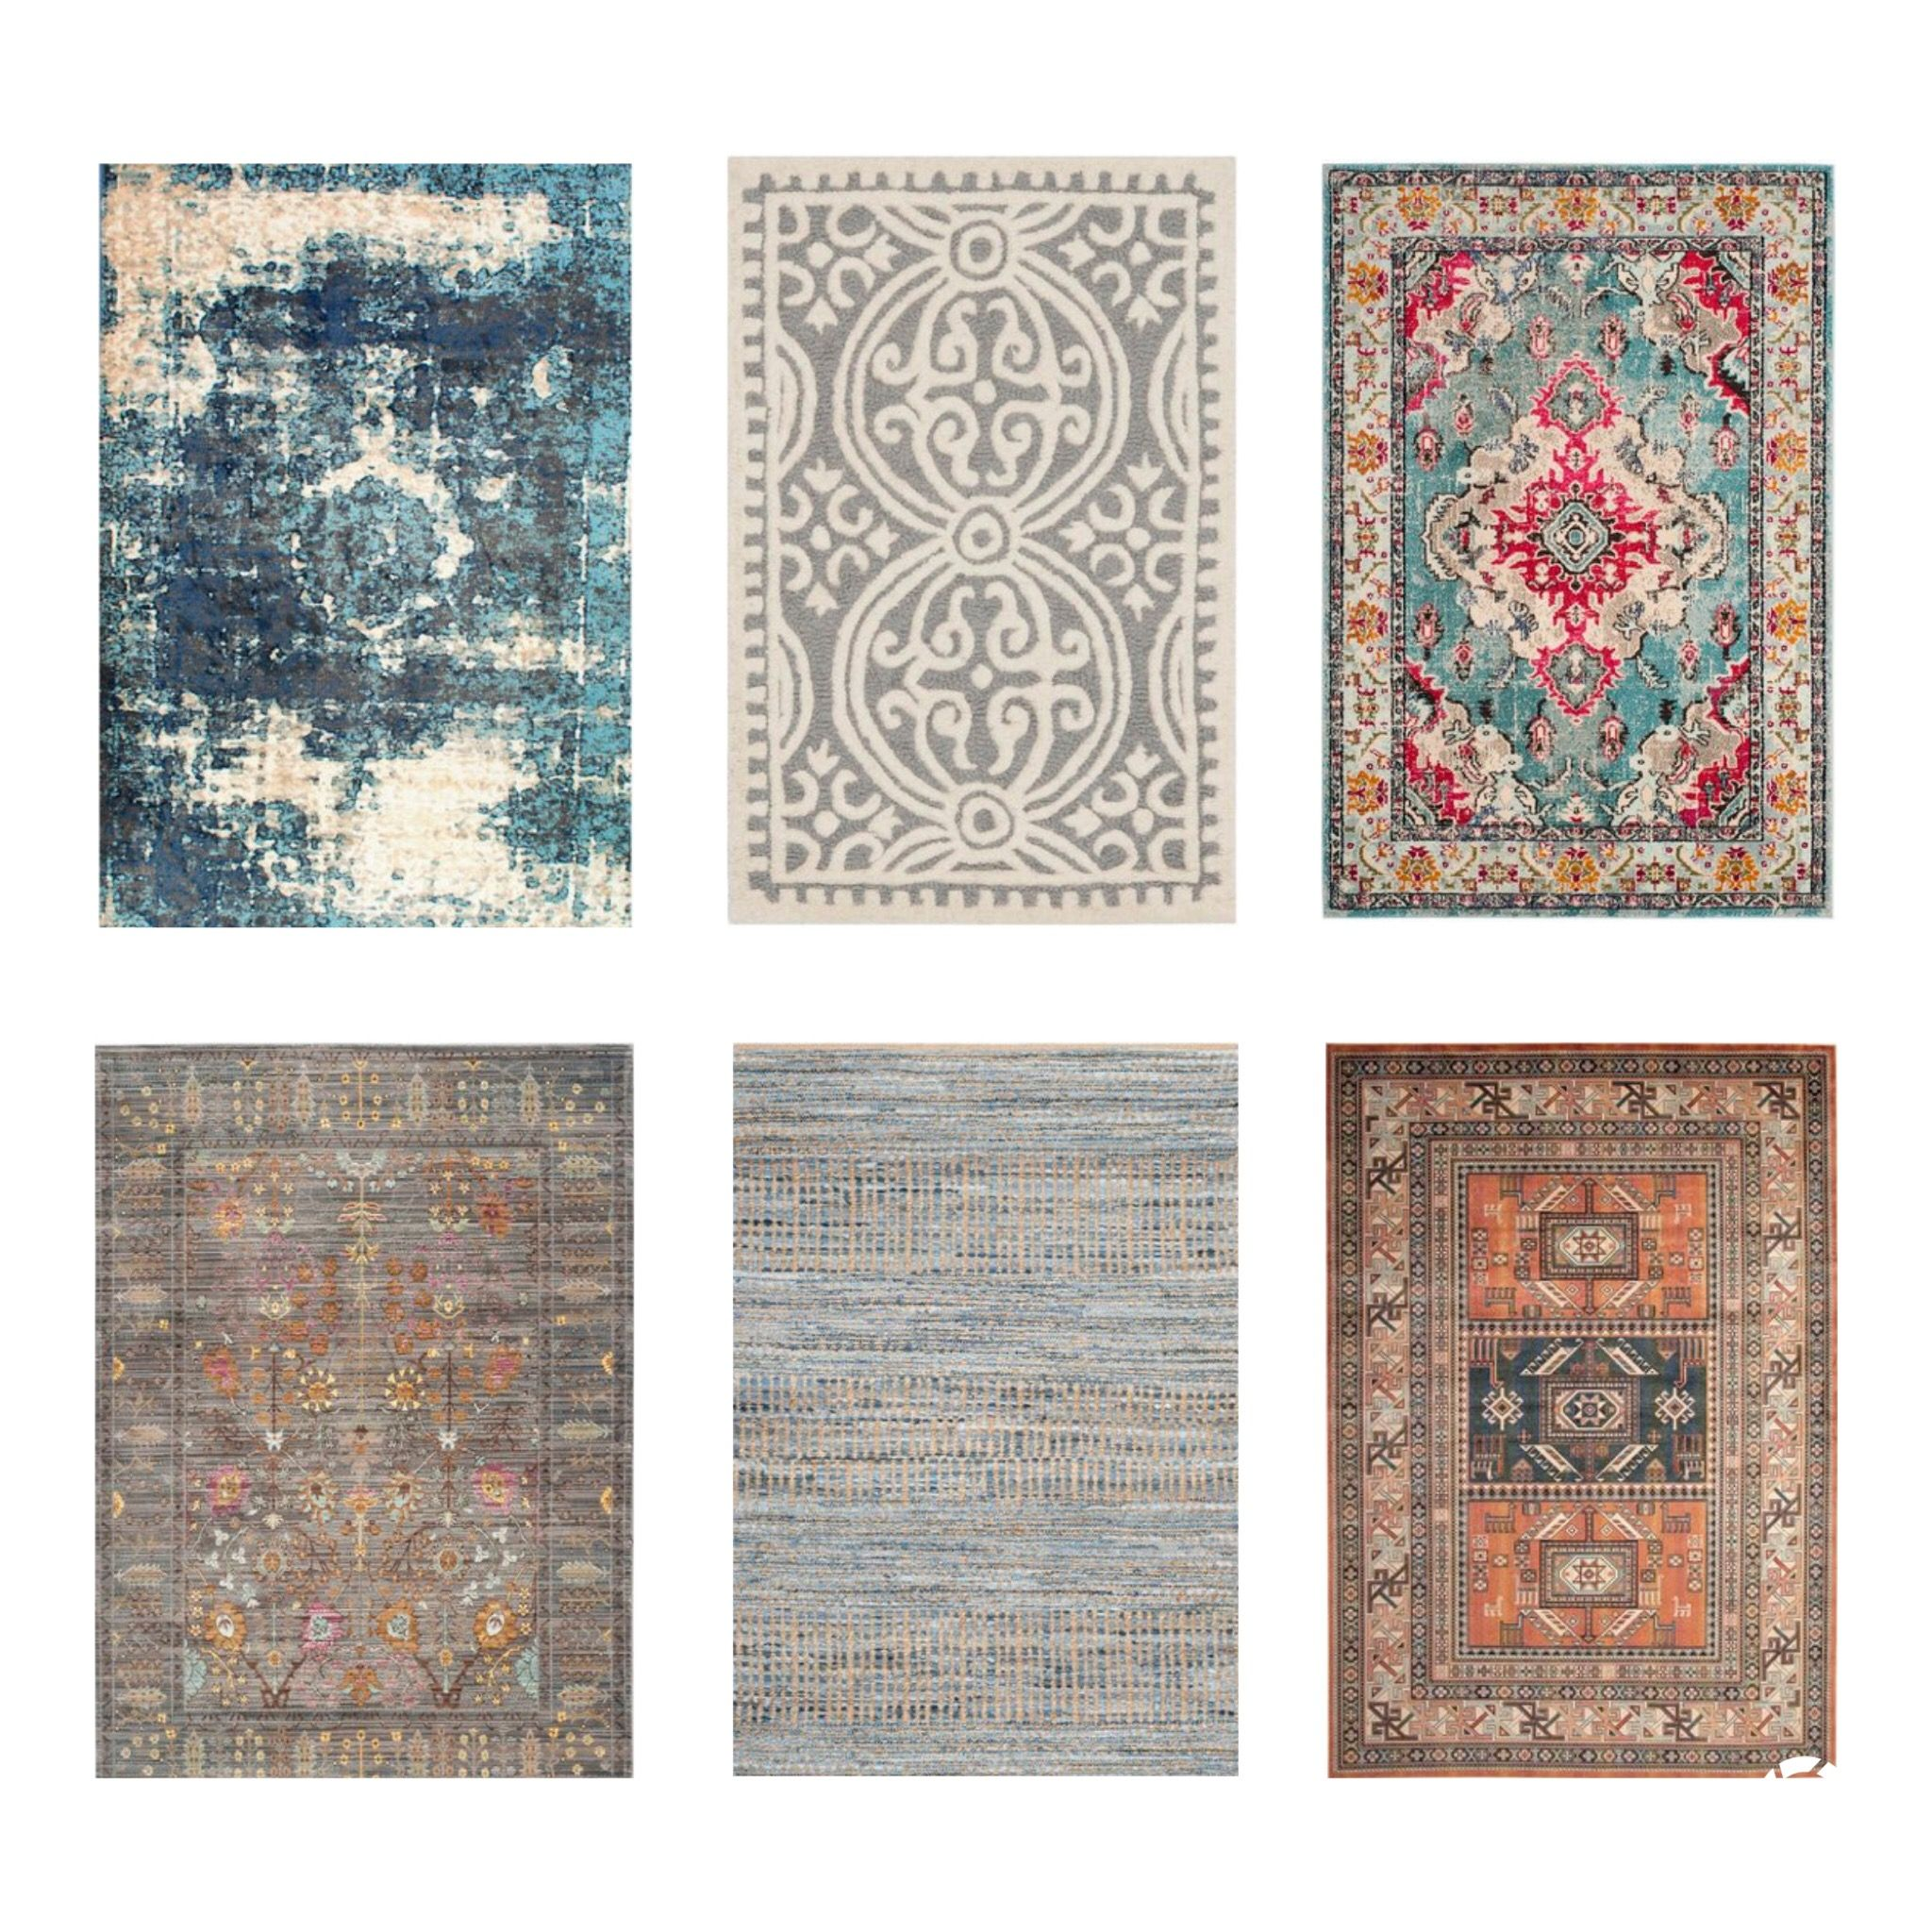 My Favorite Area Rugs From Wayfair H Prall Co Country Area Rugs Area Rugs Rugs On Carpet